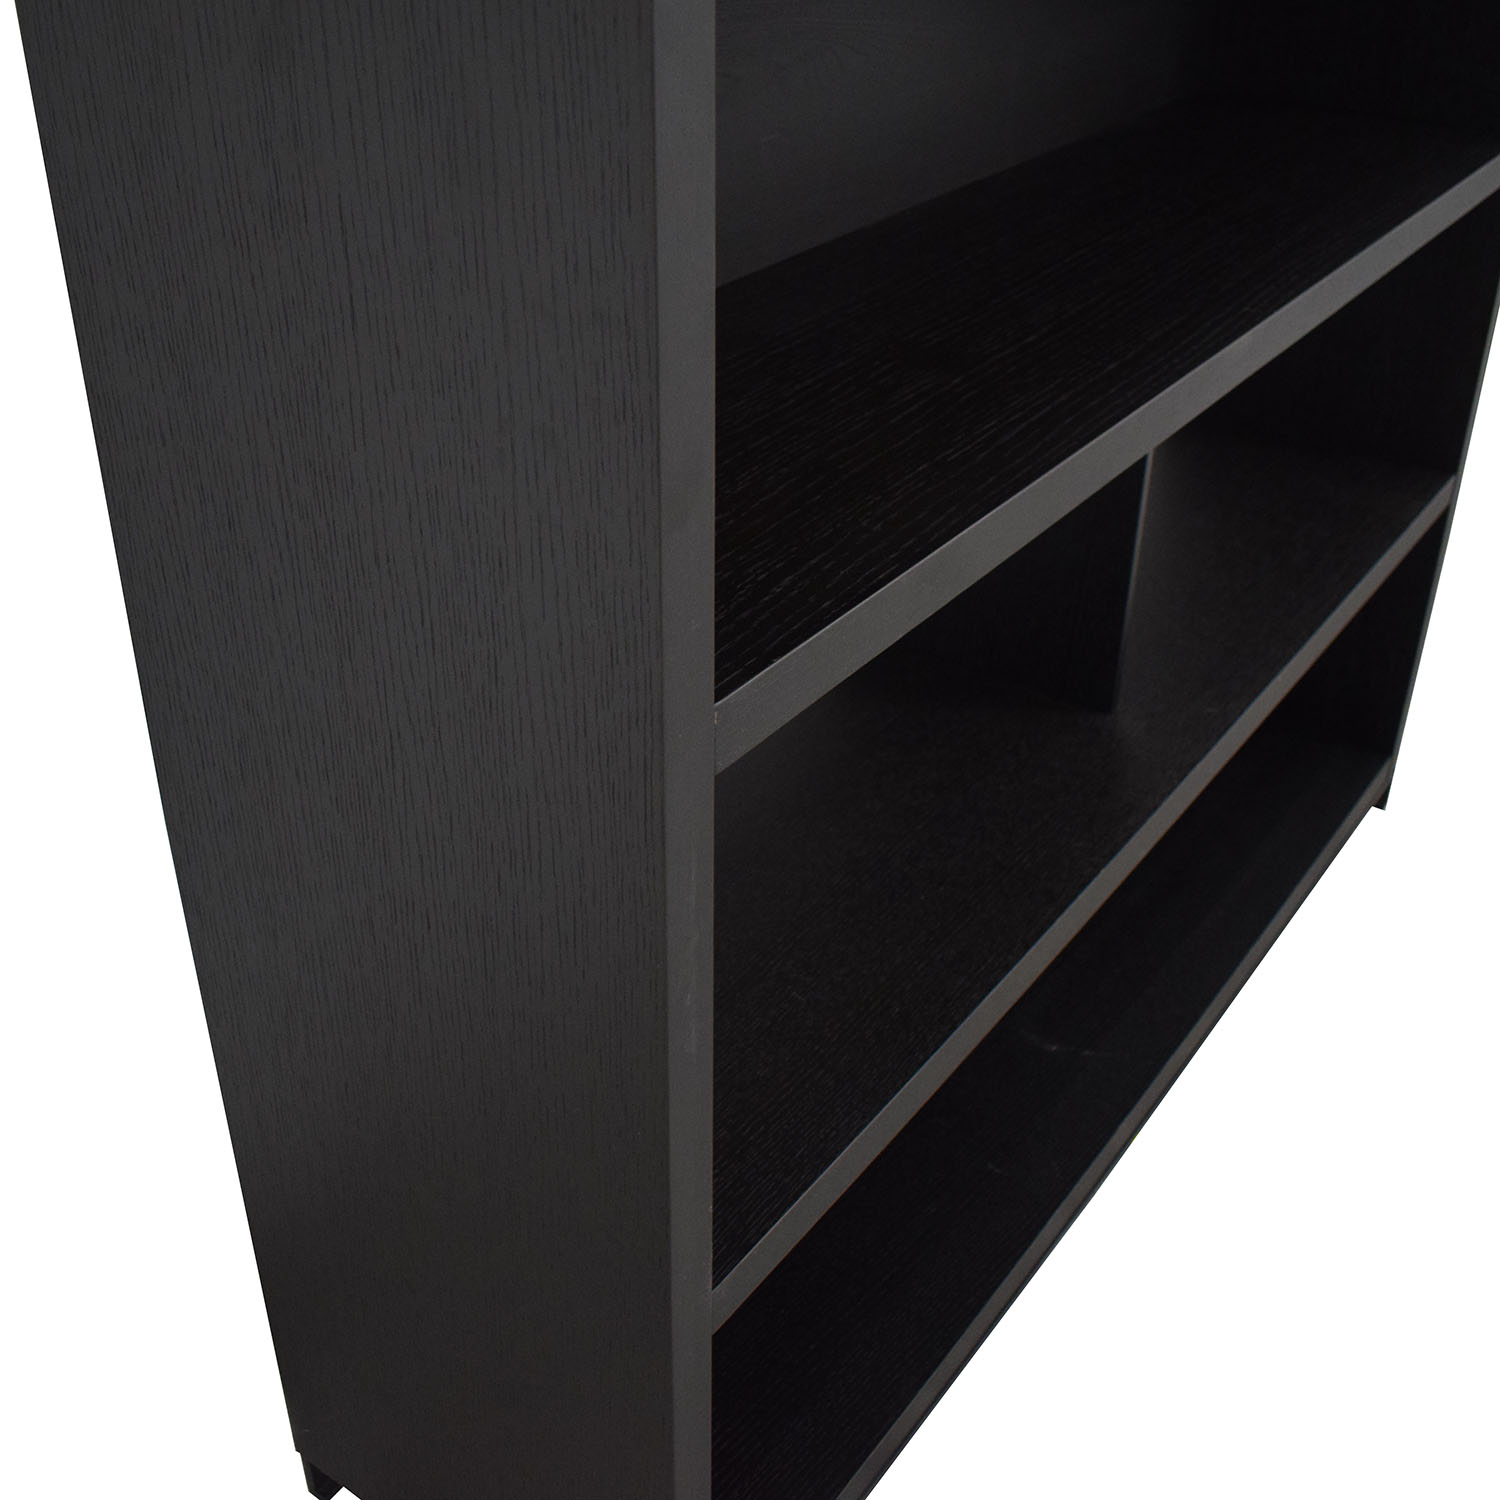 shop Tui Lifestyle Grey Oak Bookshelf Tui Lifestyle